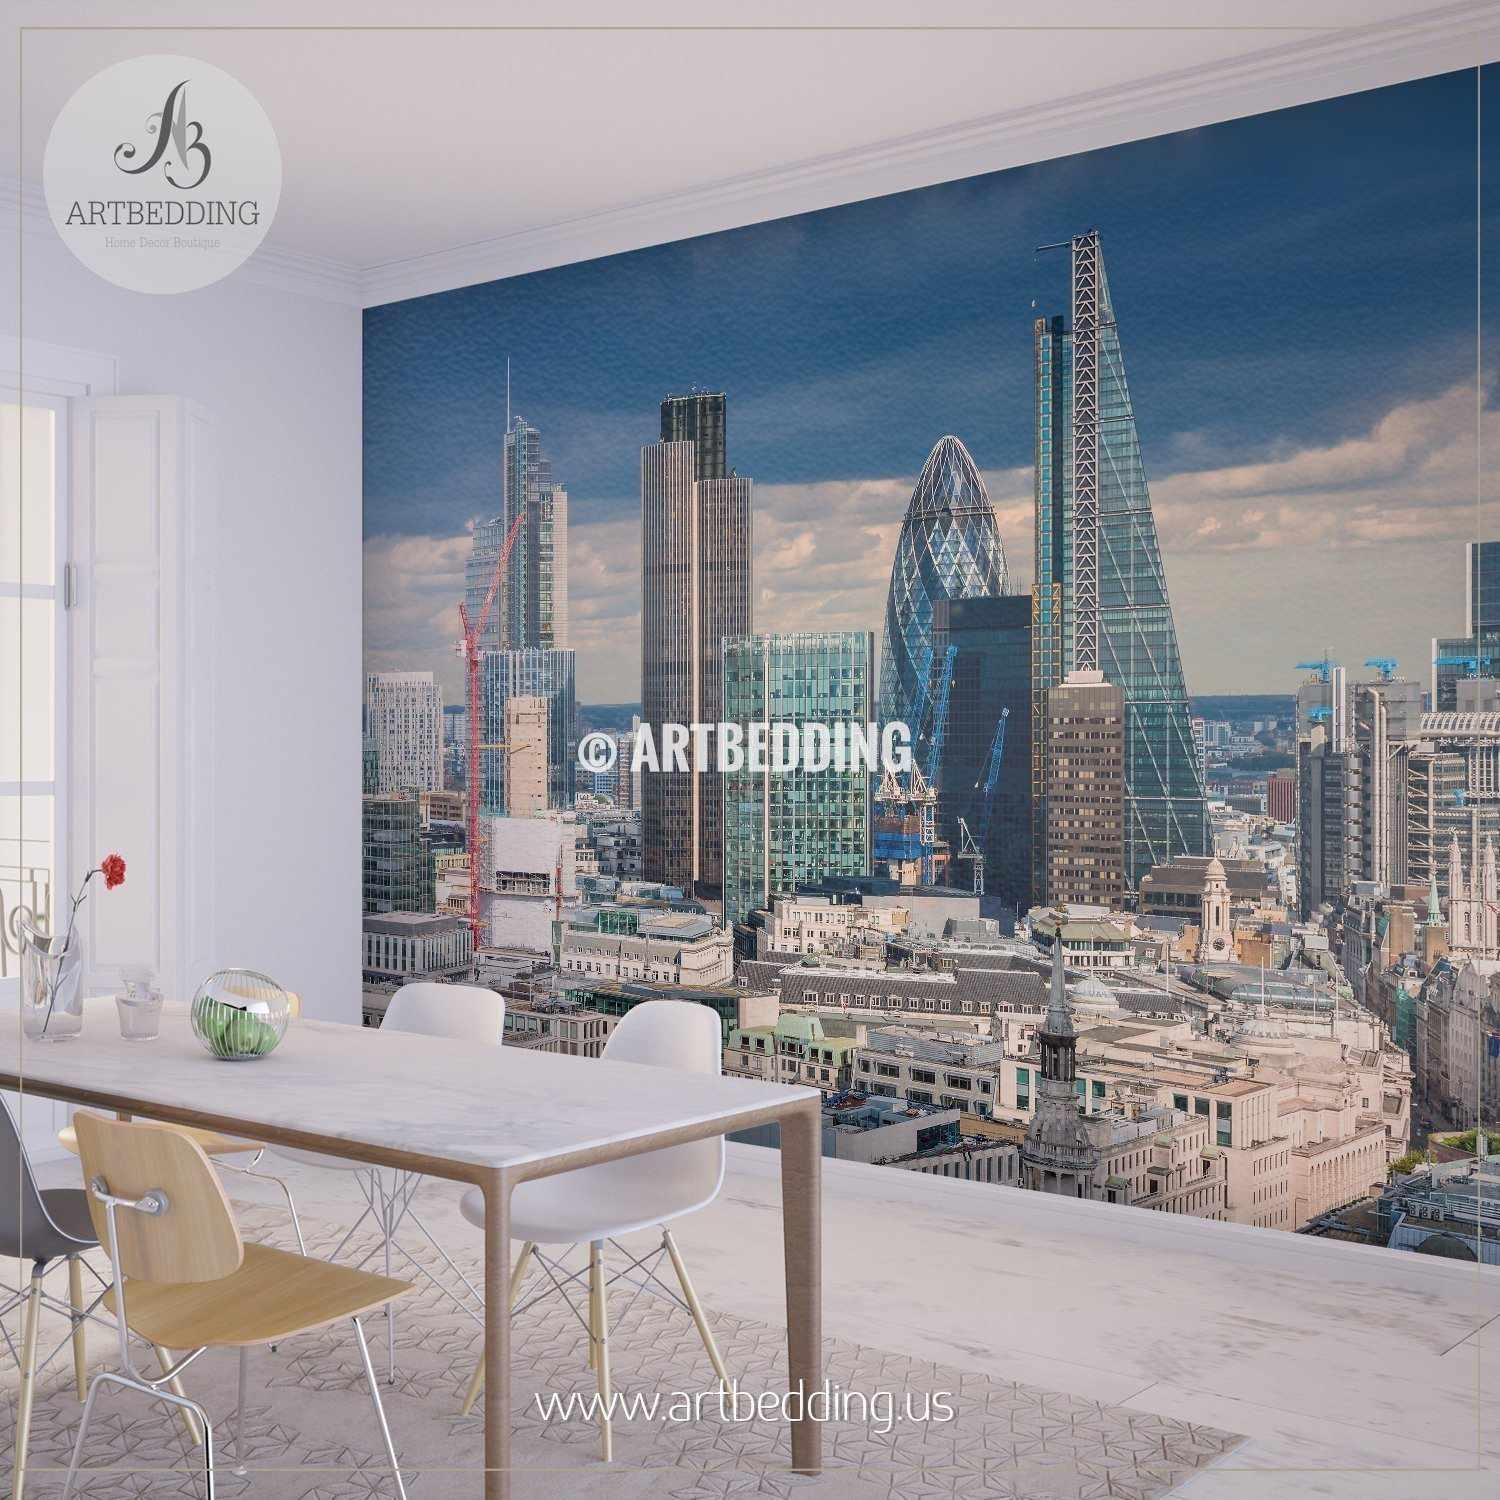 Afternoon london wall mural uk photo mural uk wall dcor afternoon london wall mural uk photo mural uk wall dcor wall mural amipublicfo Choice Image